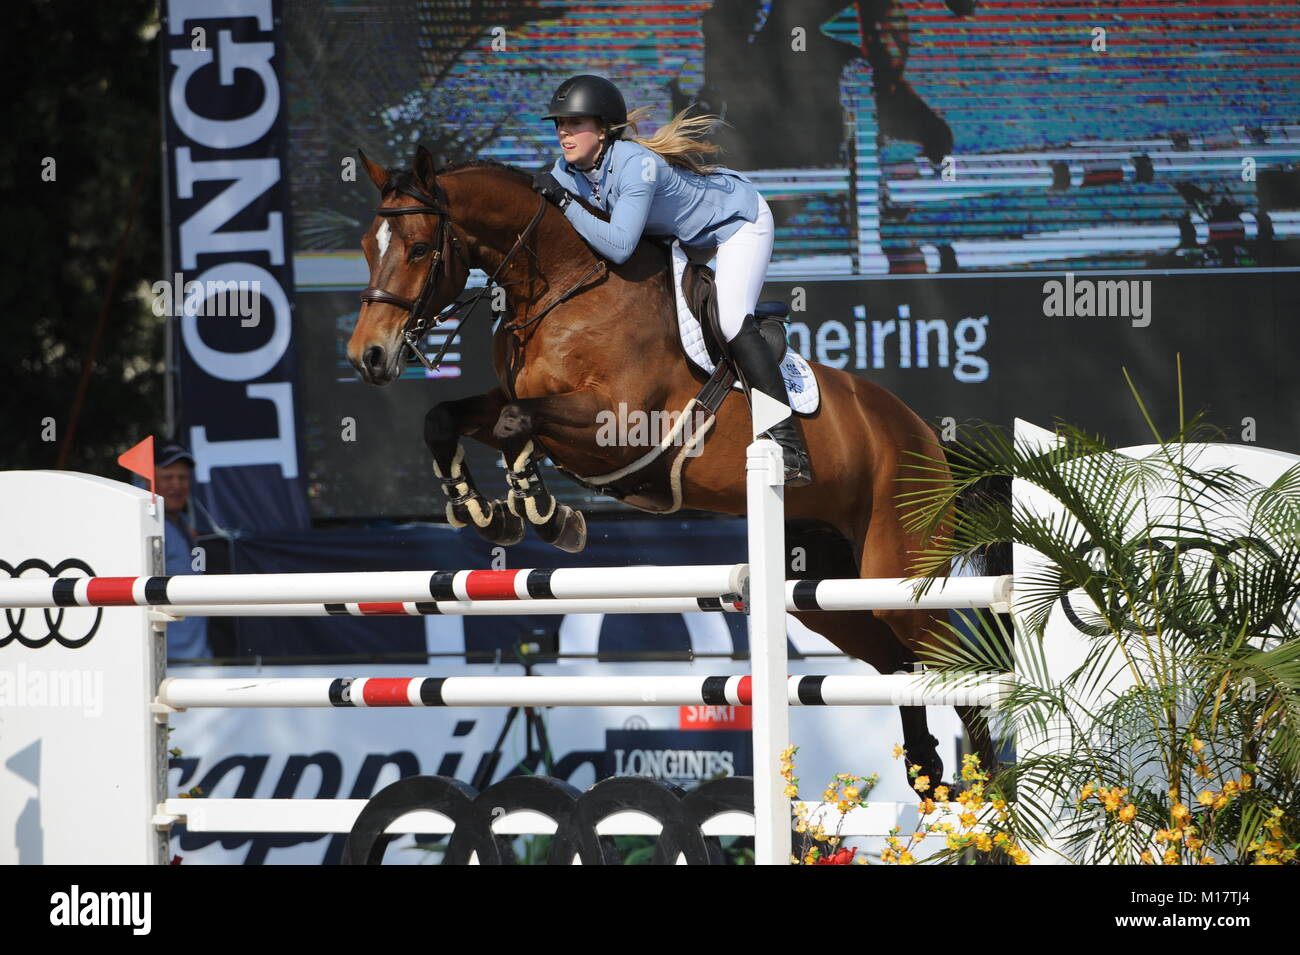 Guadalajara, Jalisco, Mexico. 27th January, 2018. CSI 4*, Longines World Cup, Sarah Scheiring (USA) riding Dontez. Stock Photo